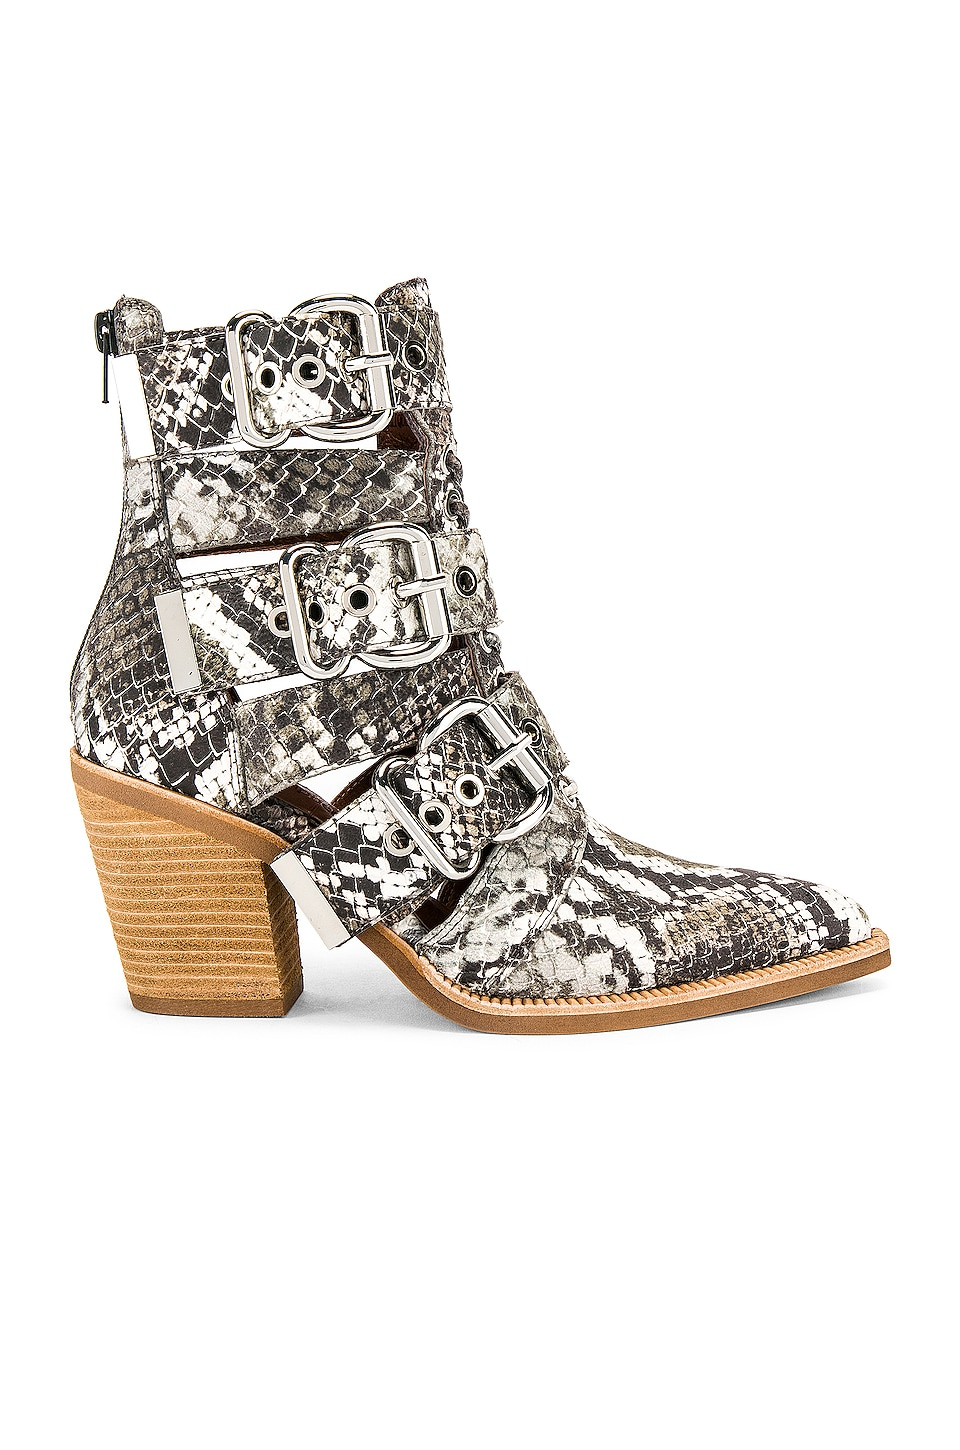 Jeffrey Campbell Caceres Bootie in Brown & Grey Snake